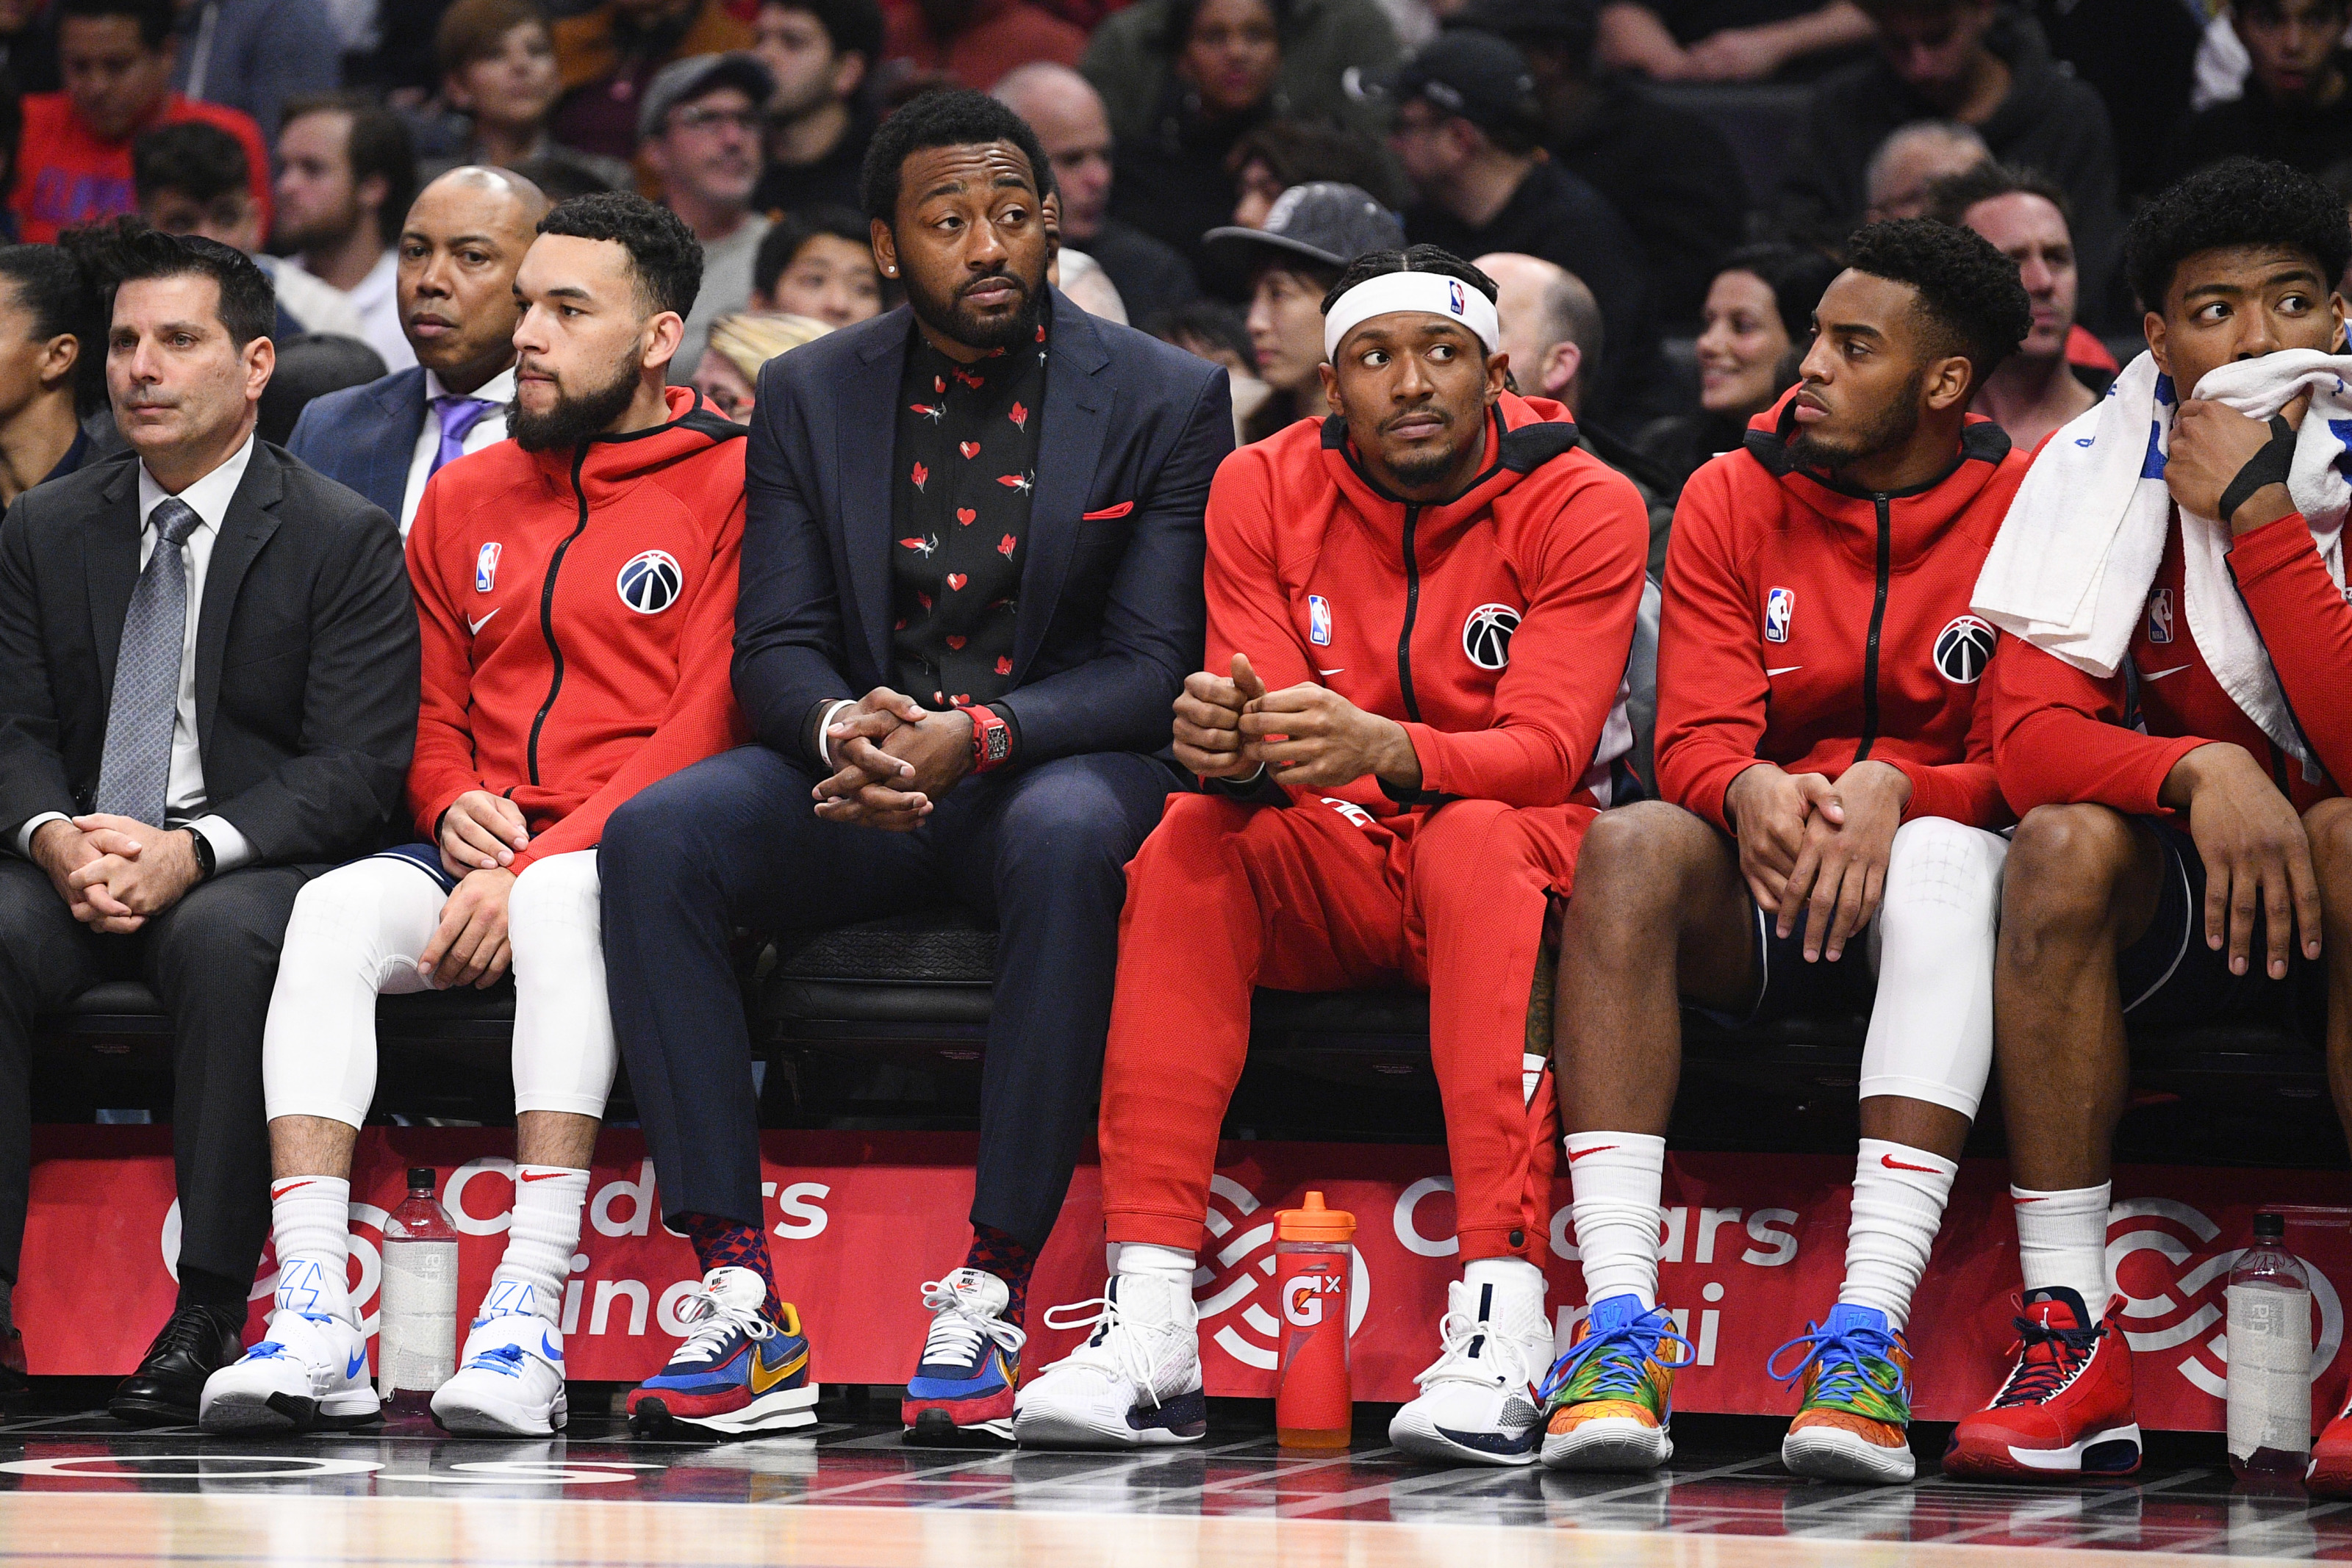 Washington Wizards There S A Catch 22 To The John Wall Timeline